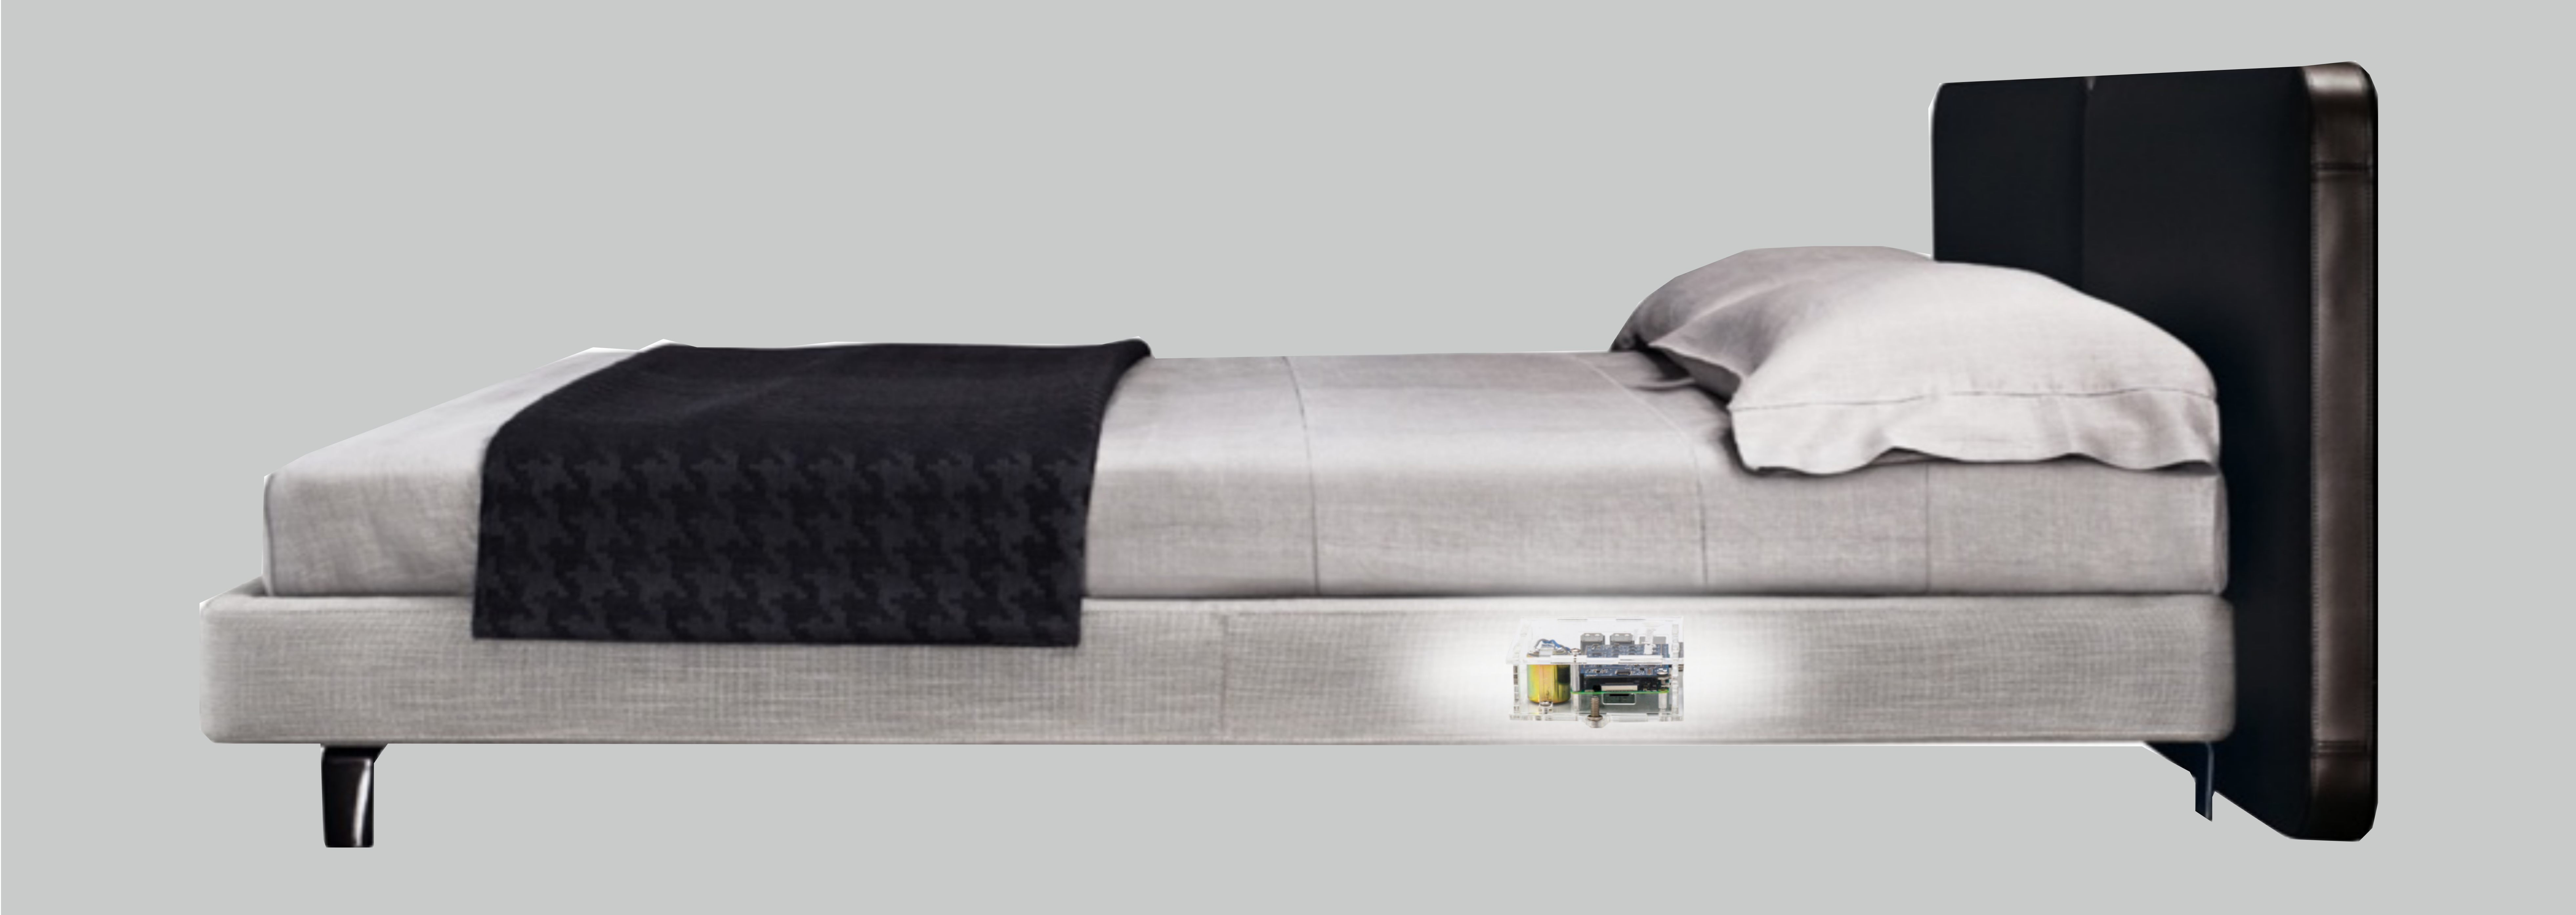 BedDot Product